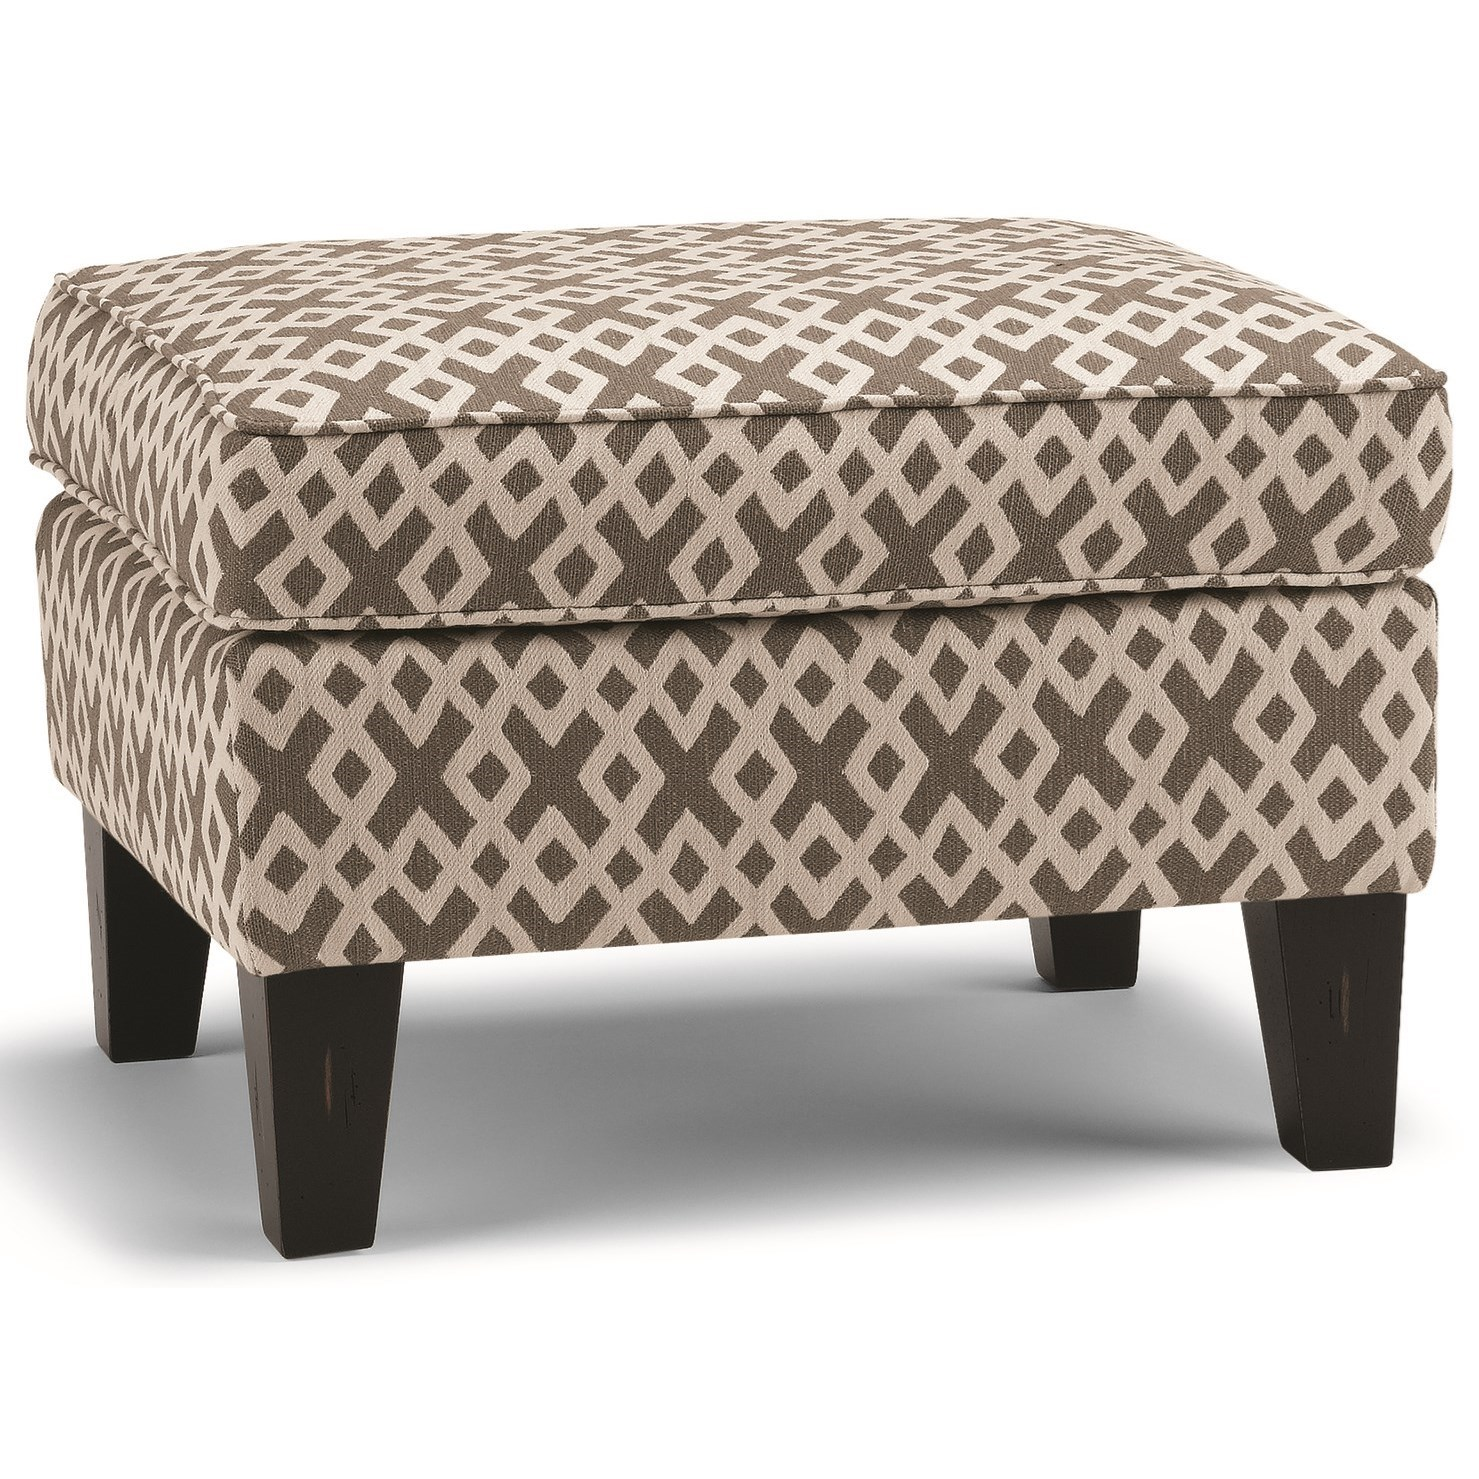 Chairs With Ottoman Club Chairs Ottoman By Best Home Furnishings At Boulevard Home Furnishings